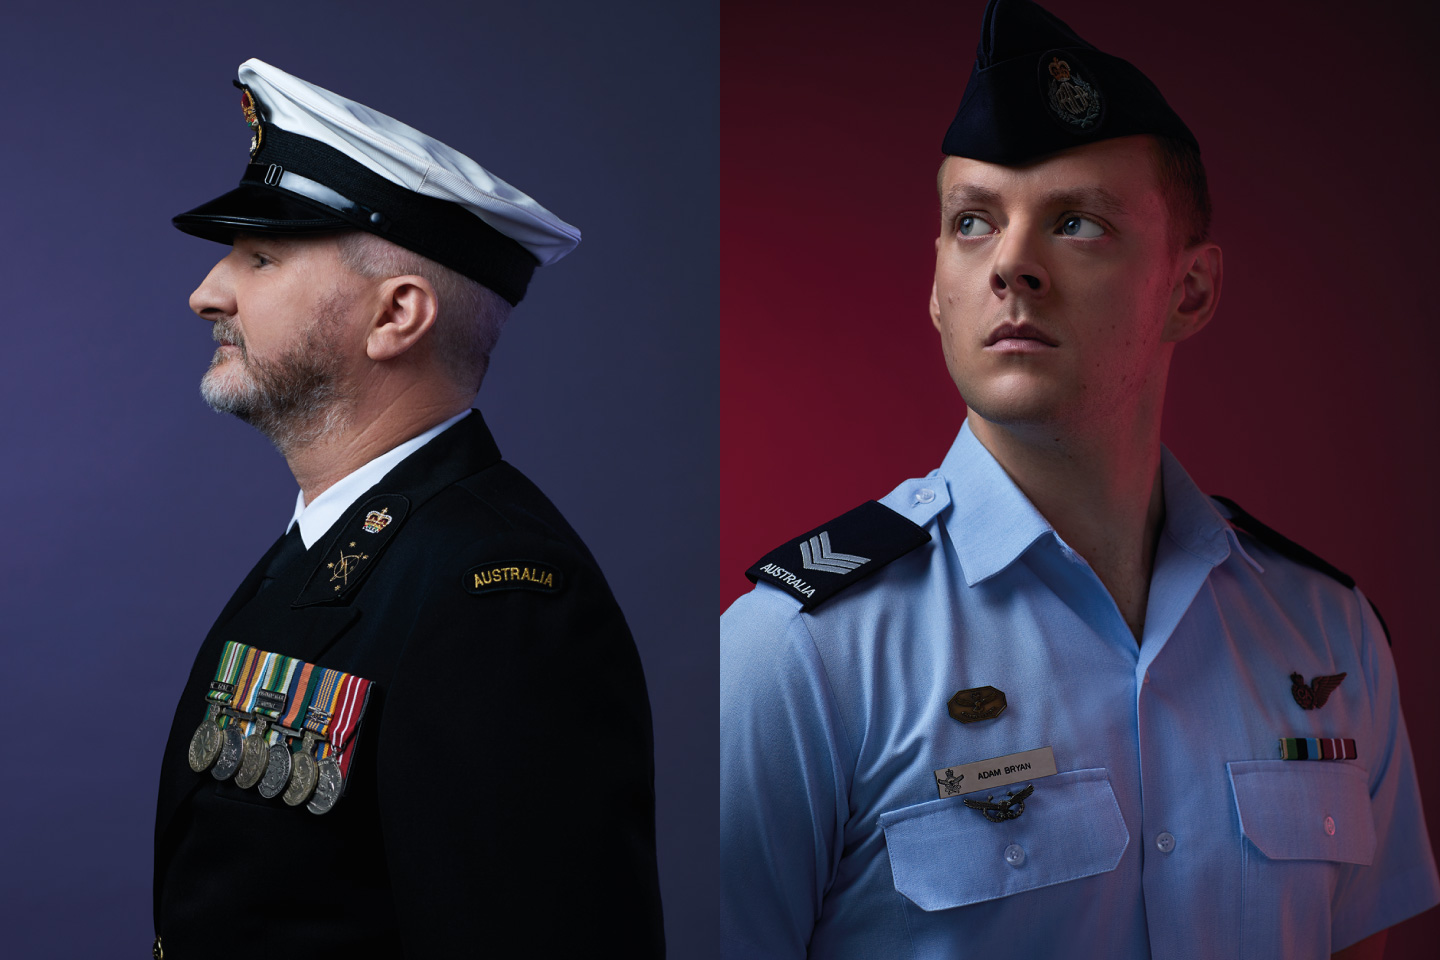 Photos of Australian service-members